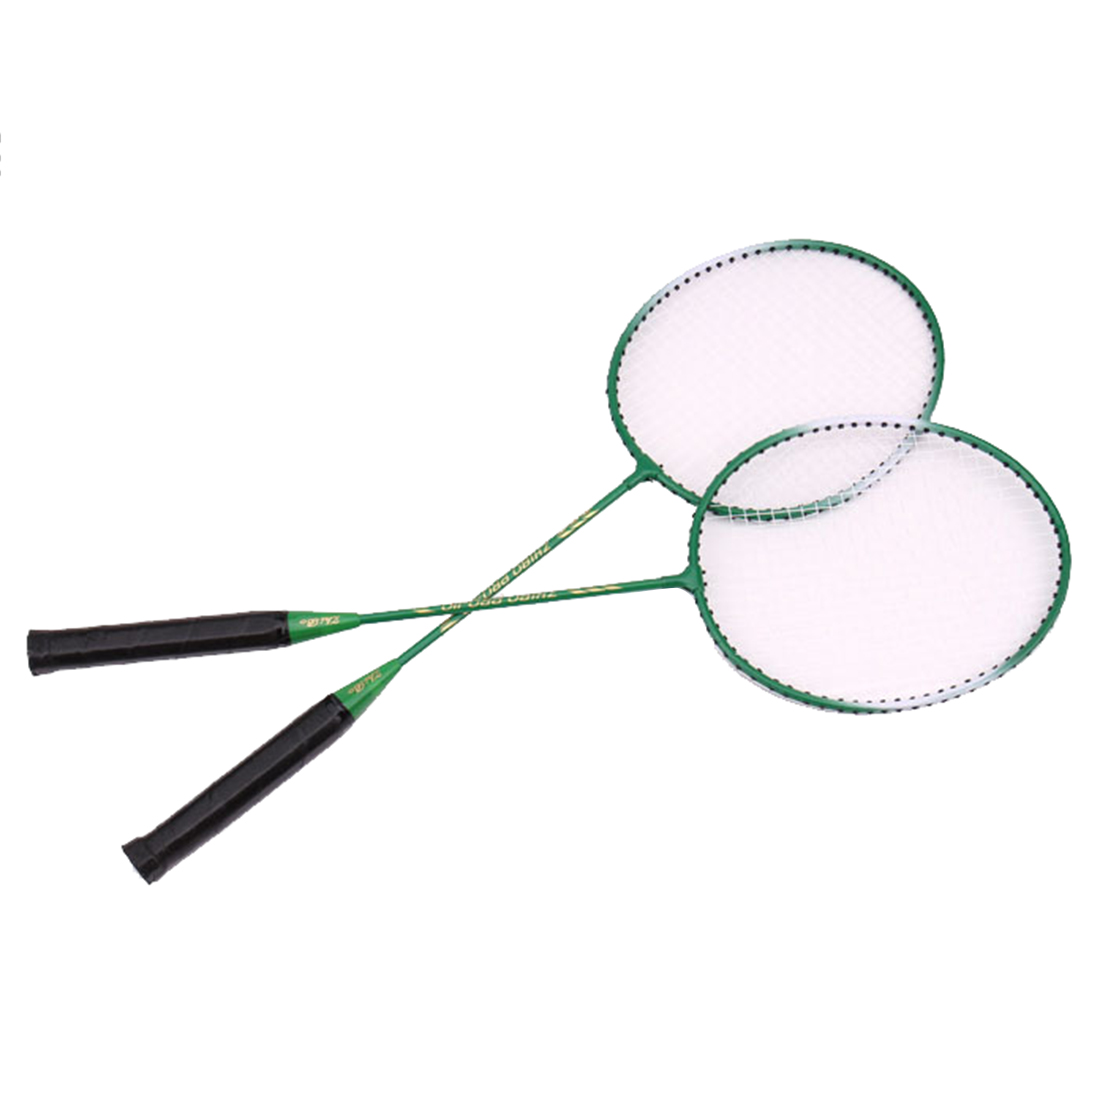 2 Player Badminton Racket Set For Outdoor Games - Green/Red/Blue